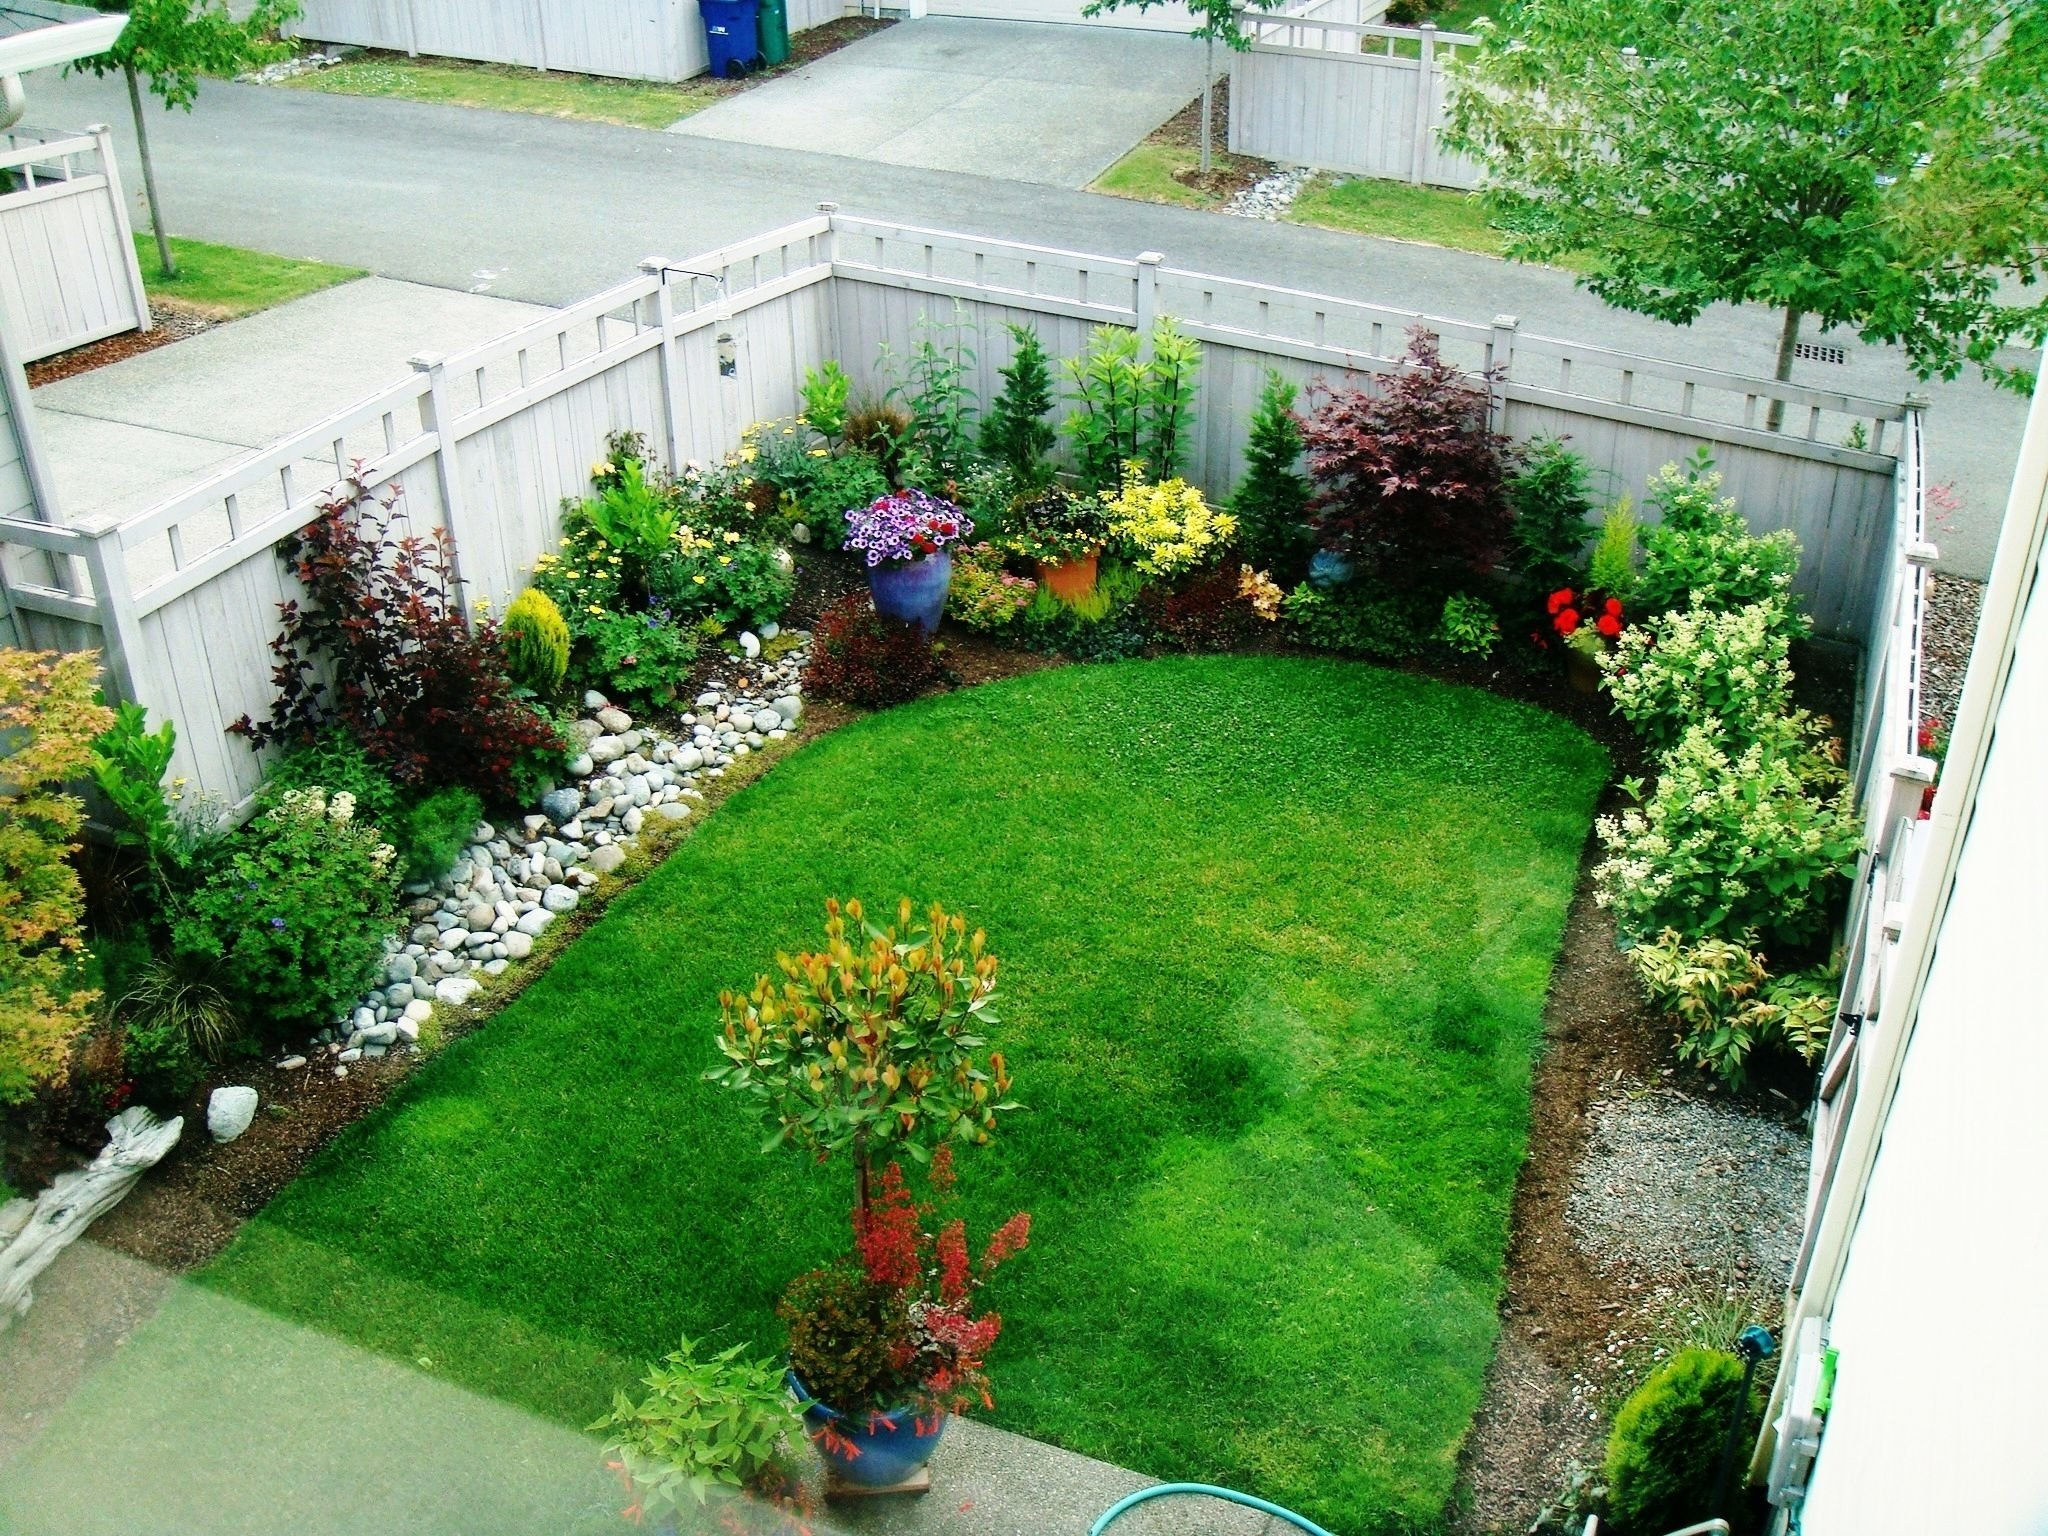 10 Attractive Landscaping Ideas For Small Areas 18 garden design for small backyard page 13 of 18 landscape 6 2021